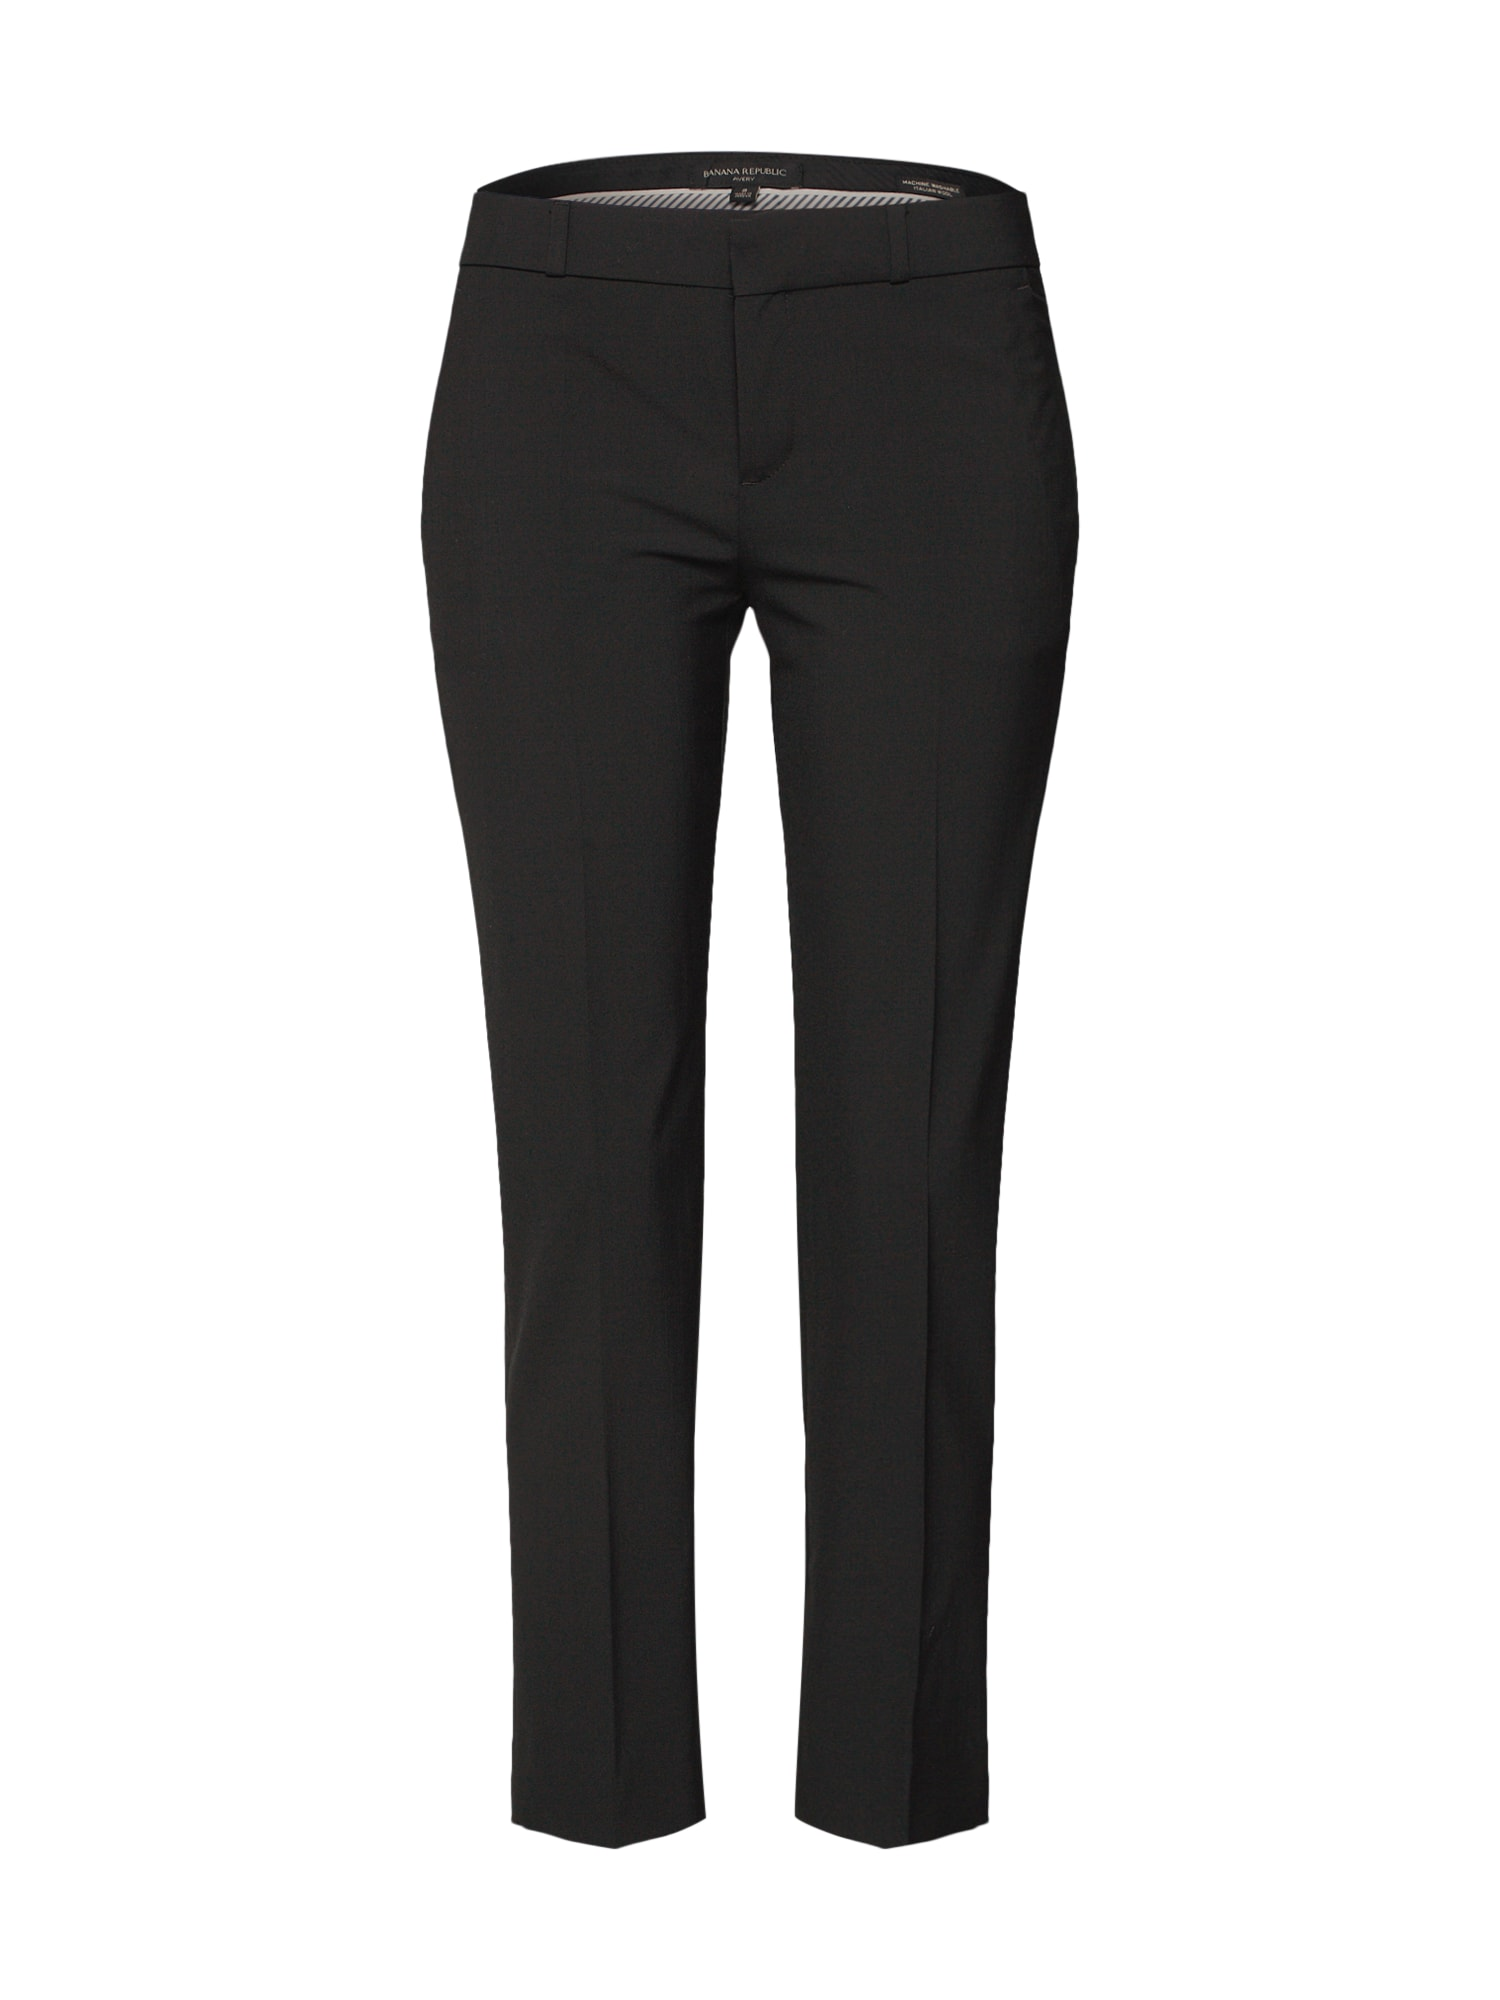 Banana Republic Kelnės su kantu 'AVERY WASHABLE LWW BLACK PANT' juoda